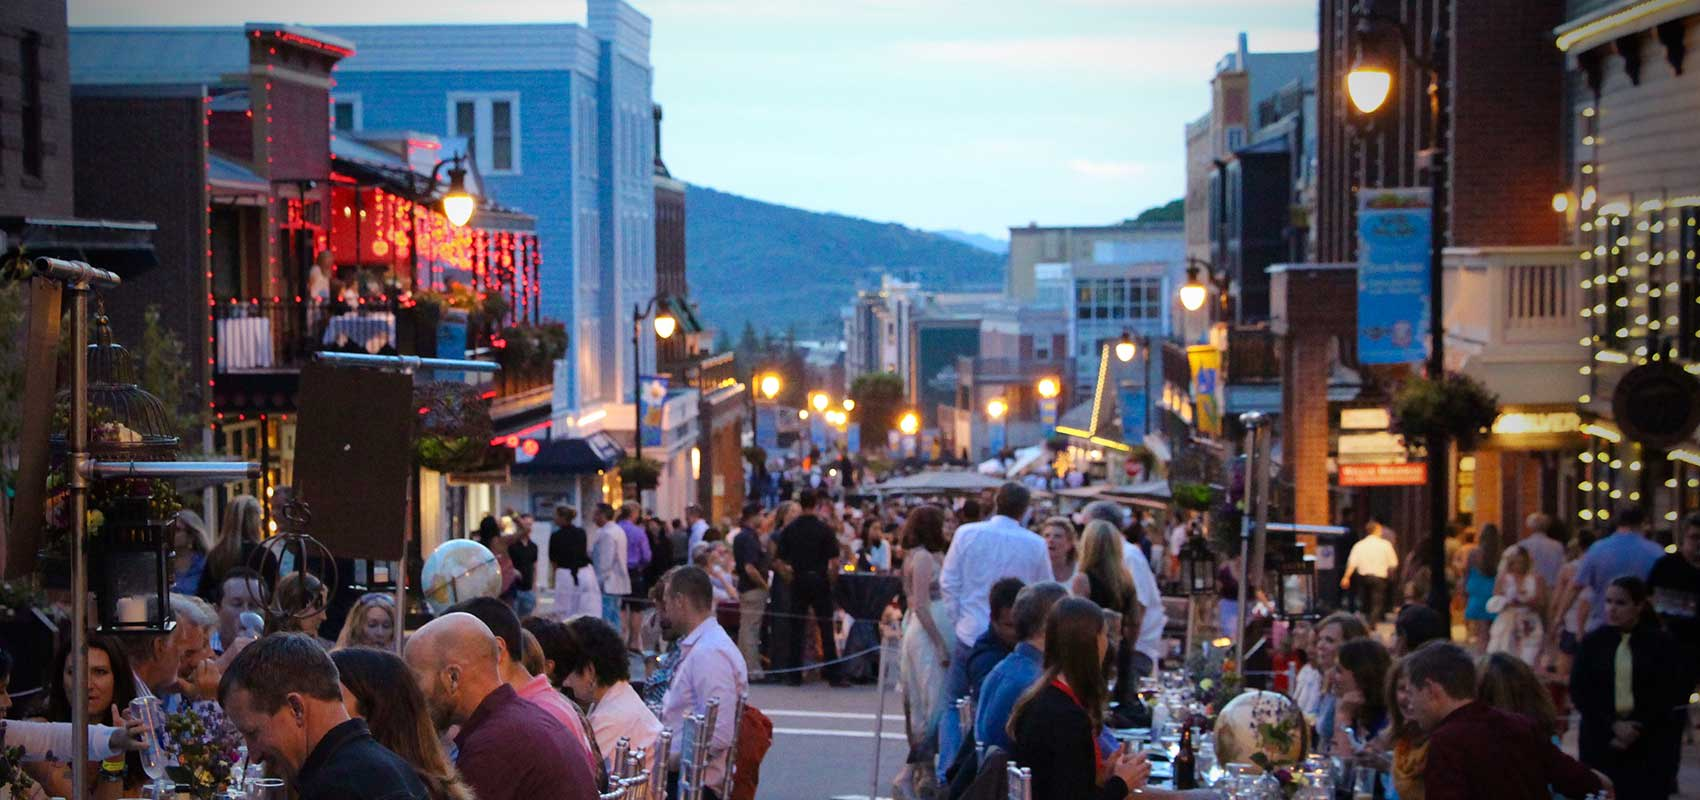 Shop, Dine & Stroll || Sundays on Main Street are Car-Free! Image